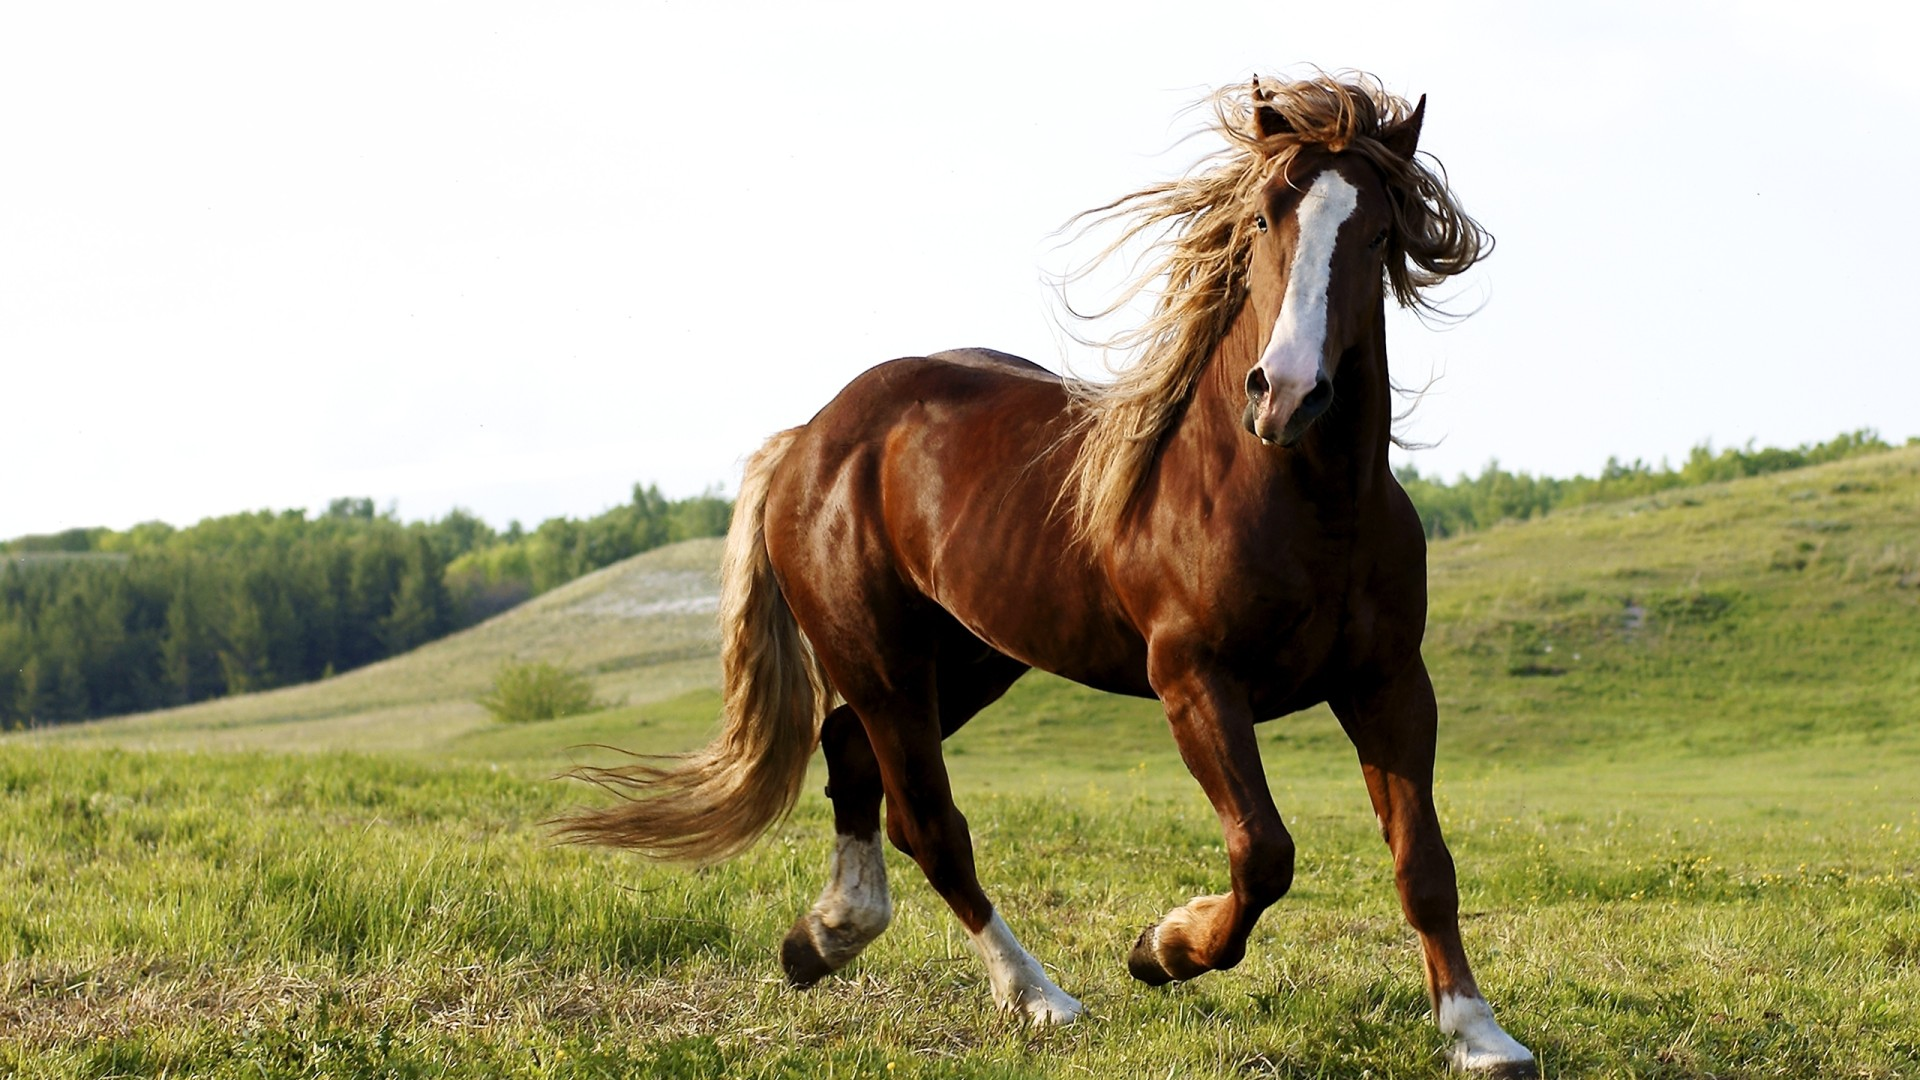 Wallpapers Sports Running Horse Riding Brown Free On The Field Hd 1920x1080px